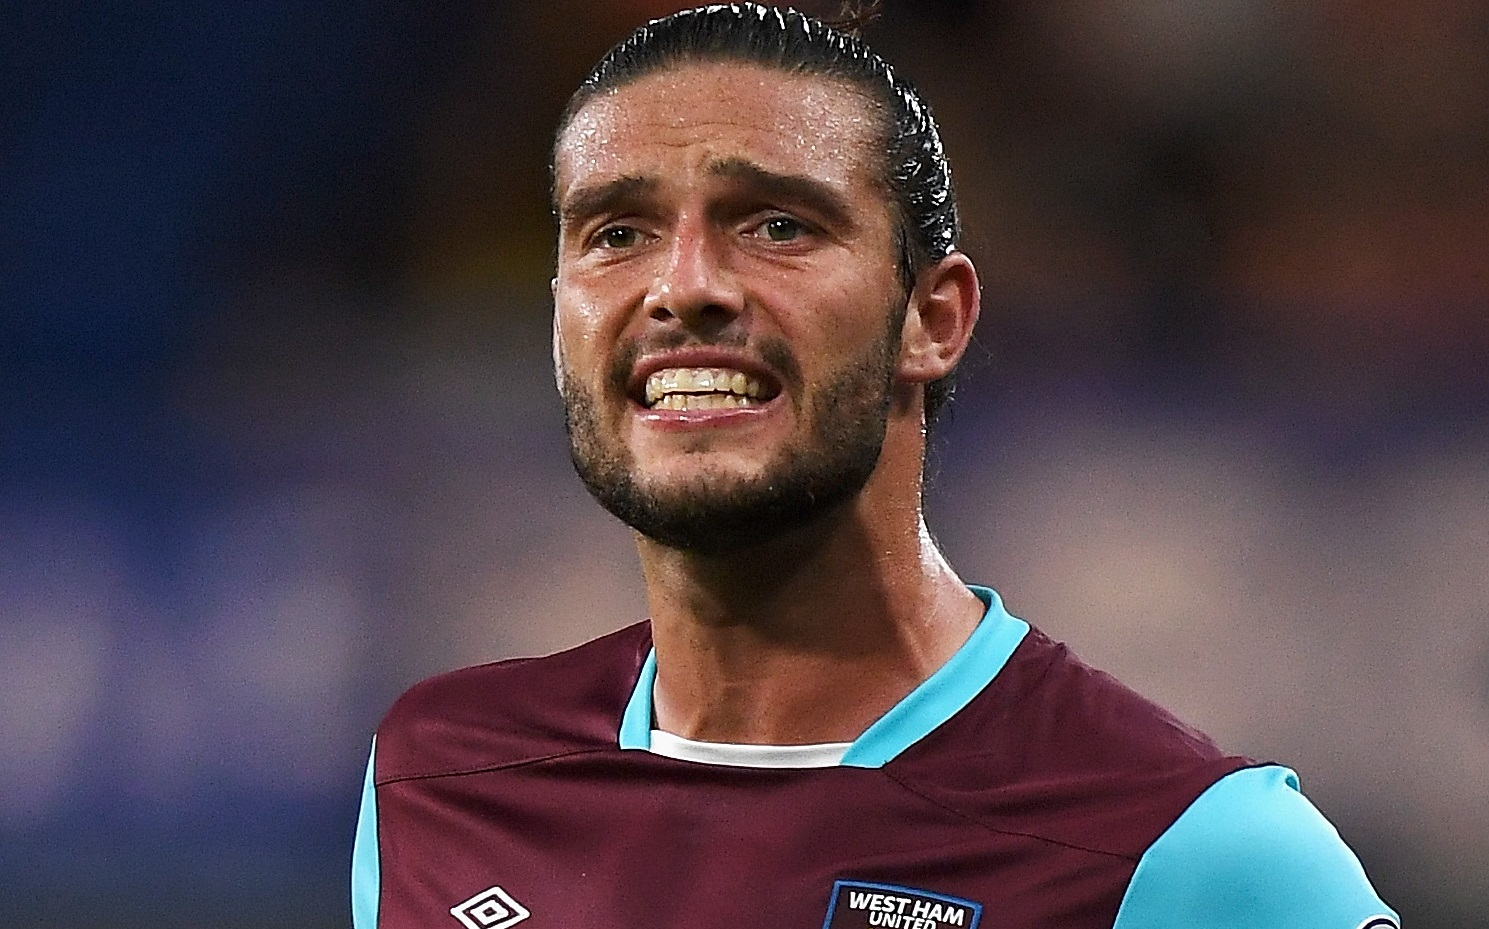 Andy Carroll drove wrong way down road and hit 10 cars fleeing